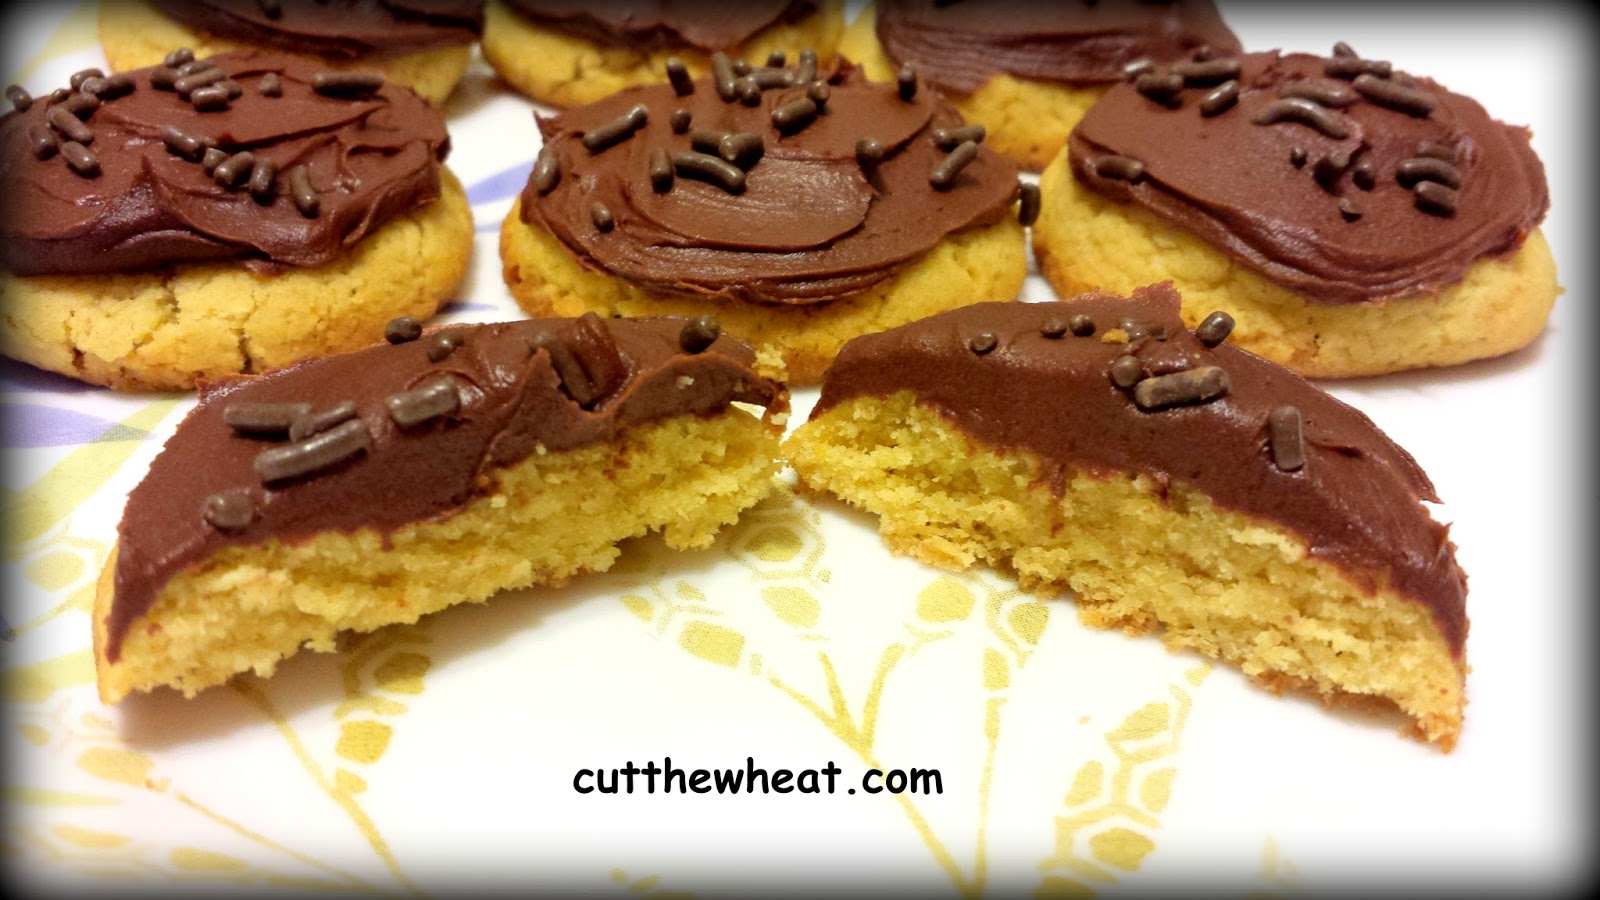 Chinese Almond Cookies with Chocolate Topping: Low Carb, Gluten Free ...